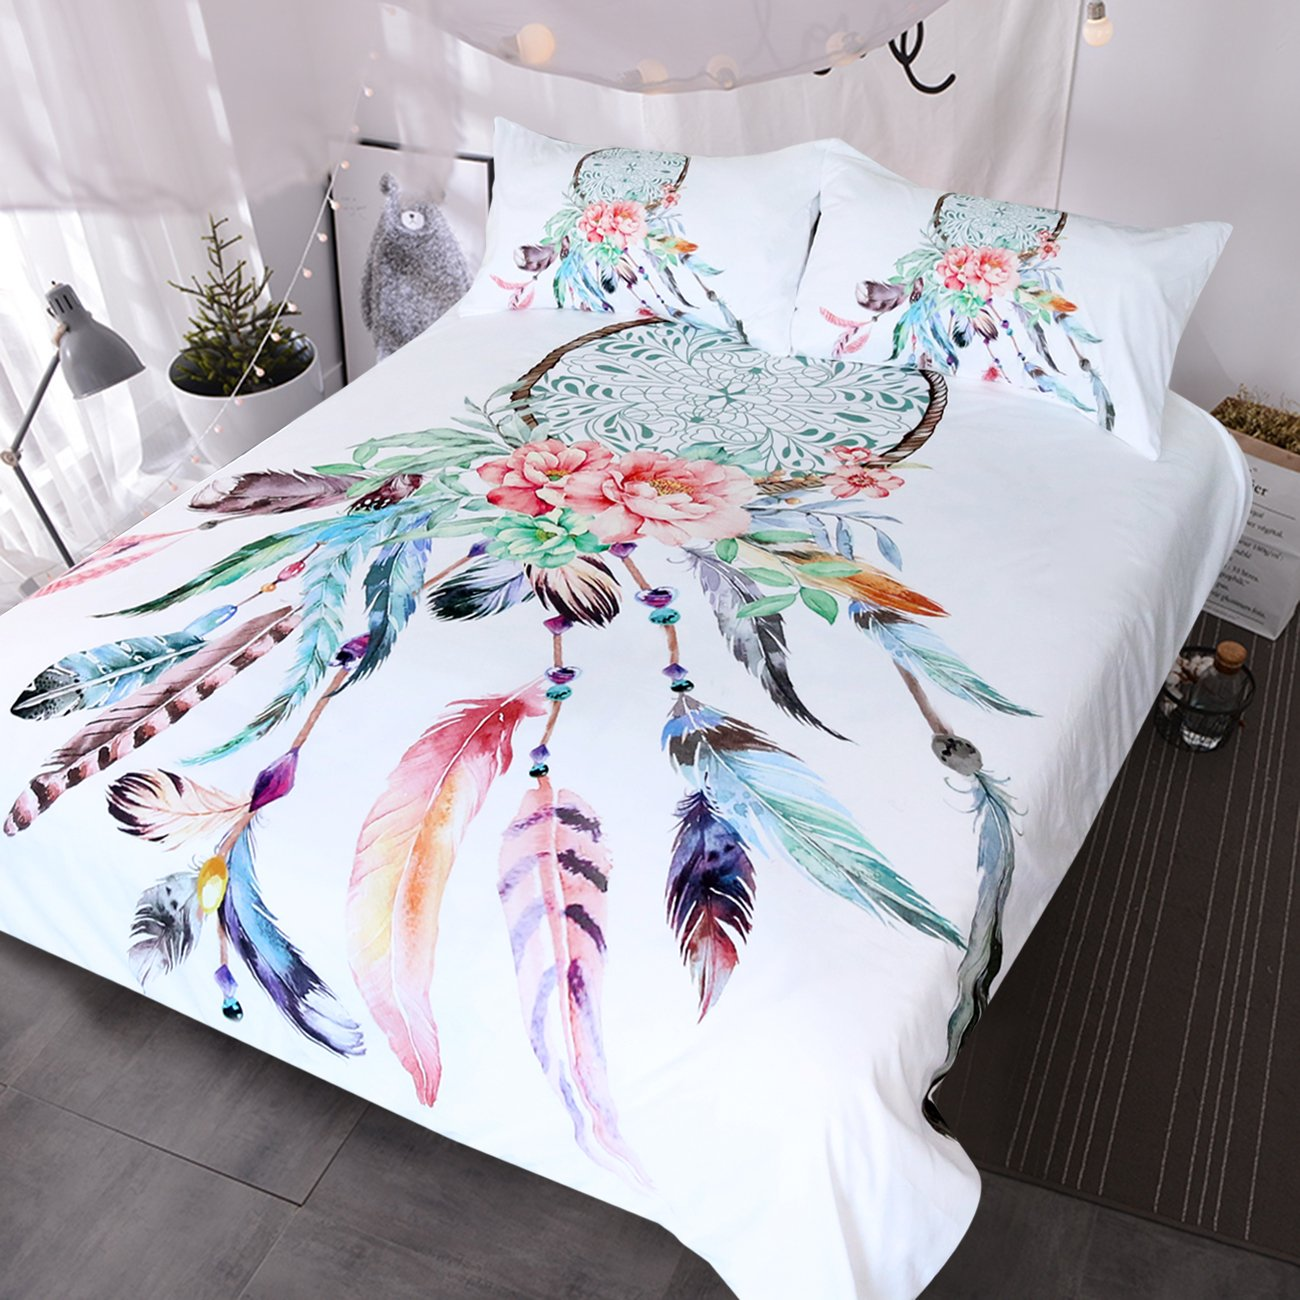 BlessLiving Big Dreamcatcher Colors Bedding, 3 Piece Dream Catcher Duvet Cover Set, Boho Doona Cover Hippie Bedspread Coverlet (Full, White)